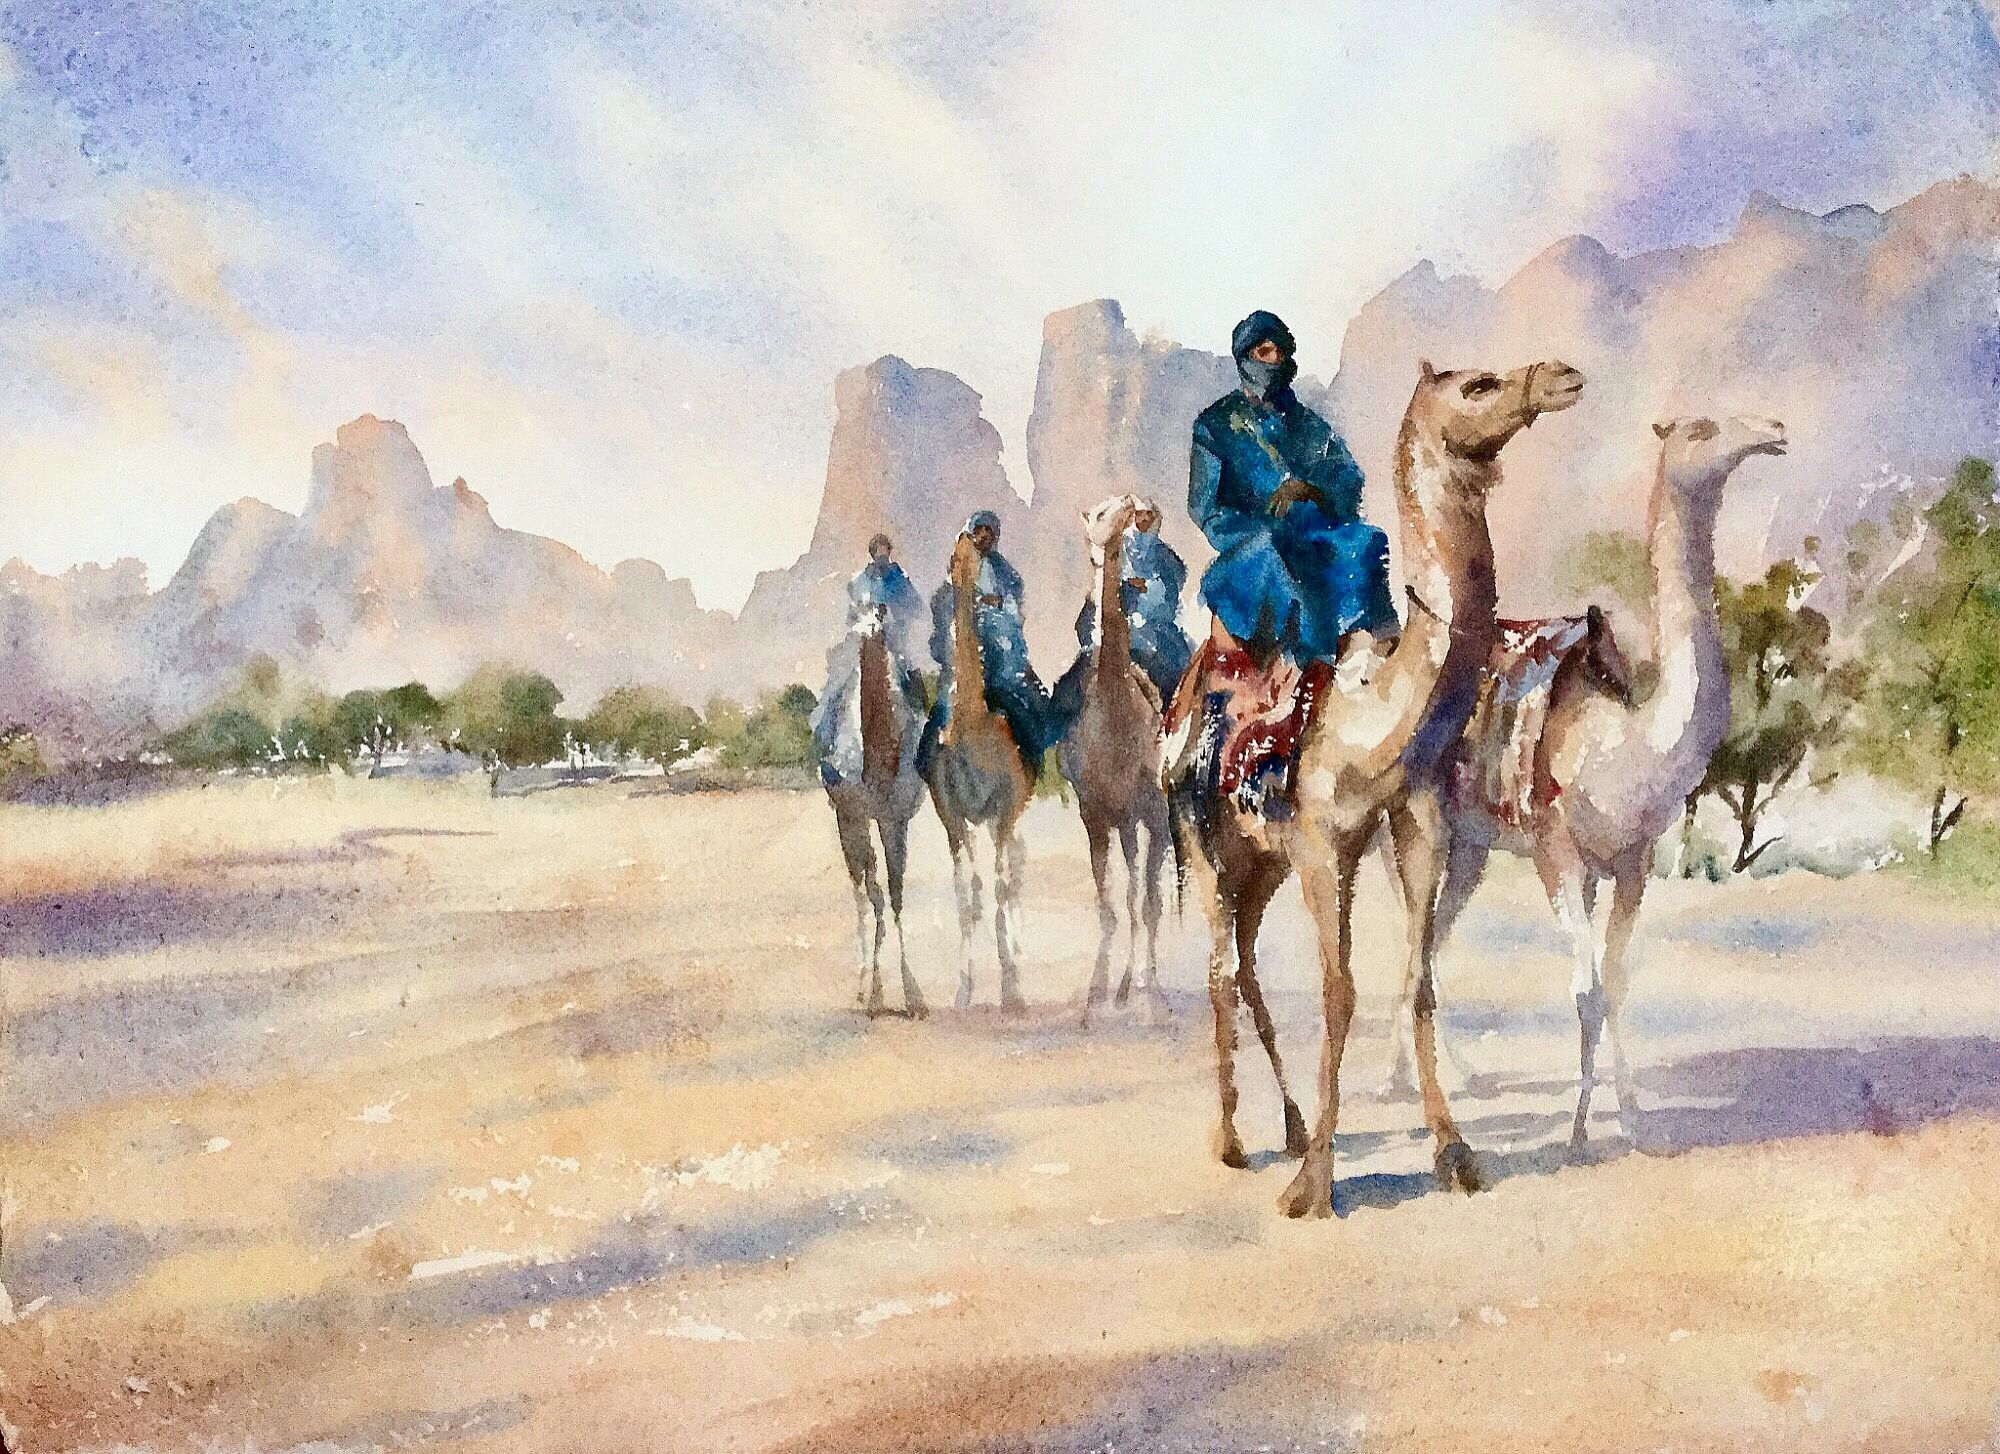 The Bedouin Riders Watercolour From The New Orientalist